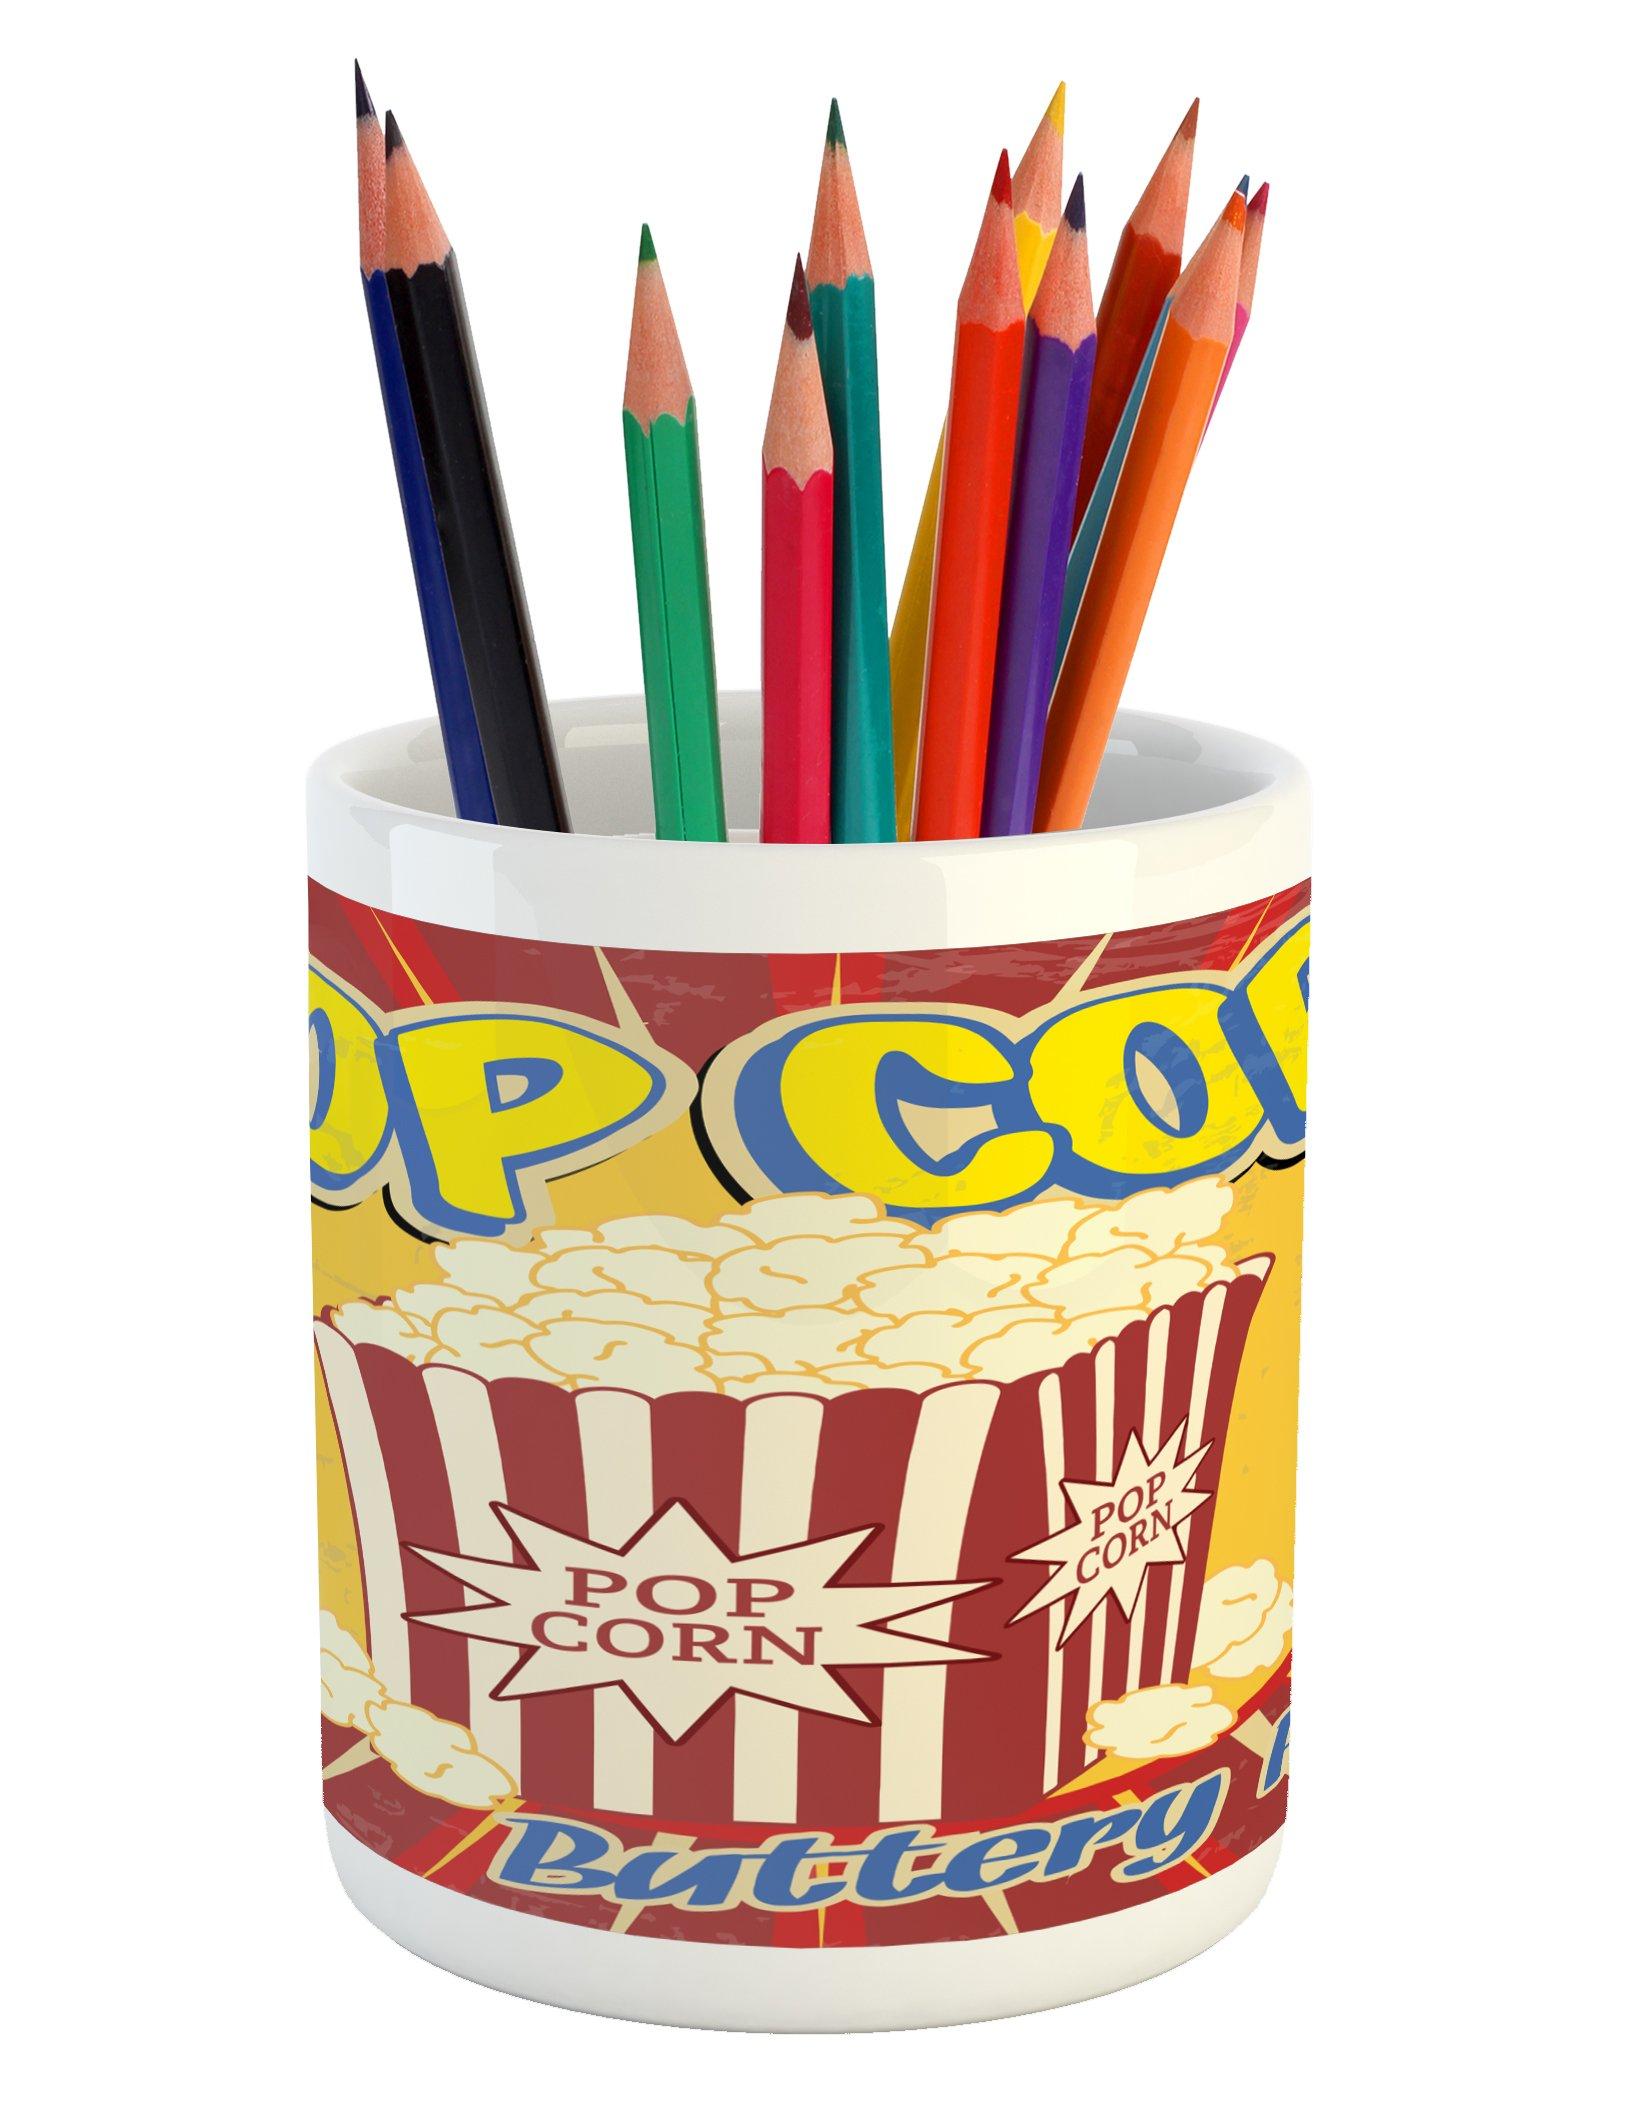 Ambesonne Retro Pencil Pen Holder, Vintage Grunge Pop Corn Commercial Print Old Fashioned Cinema Movie Film Snack Artsy, Printed Ceramic Pencil Pen Holder for Desk Office Accessory, Multicolor by Ambesonne